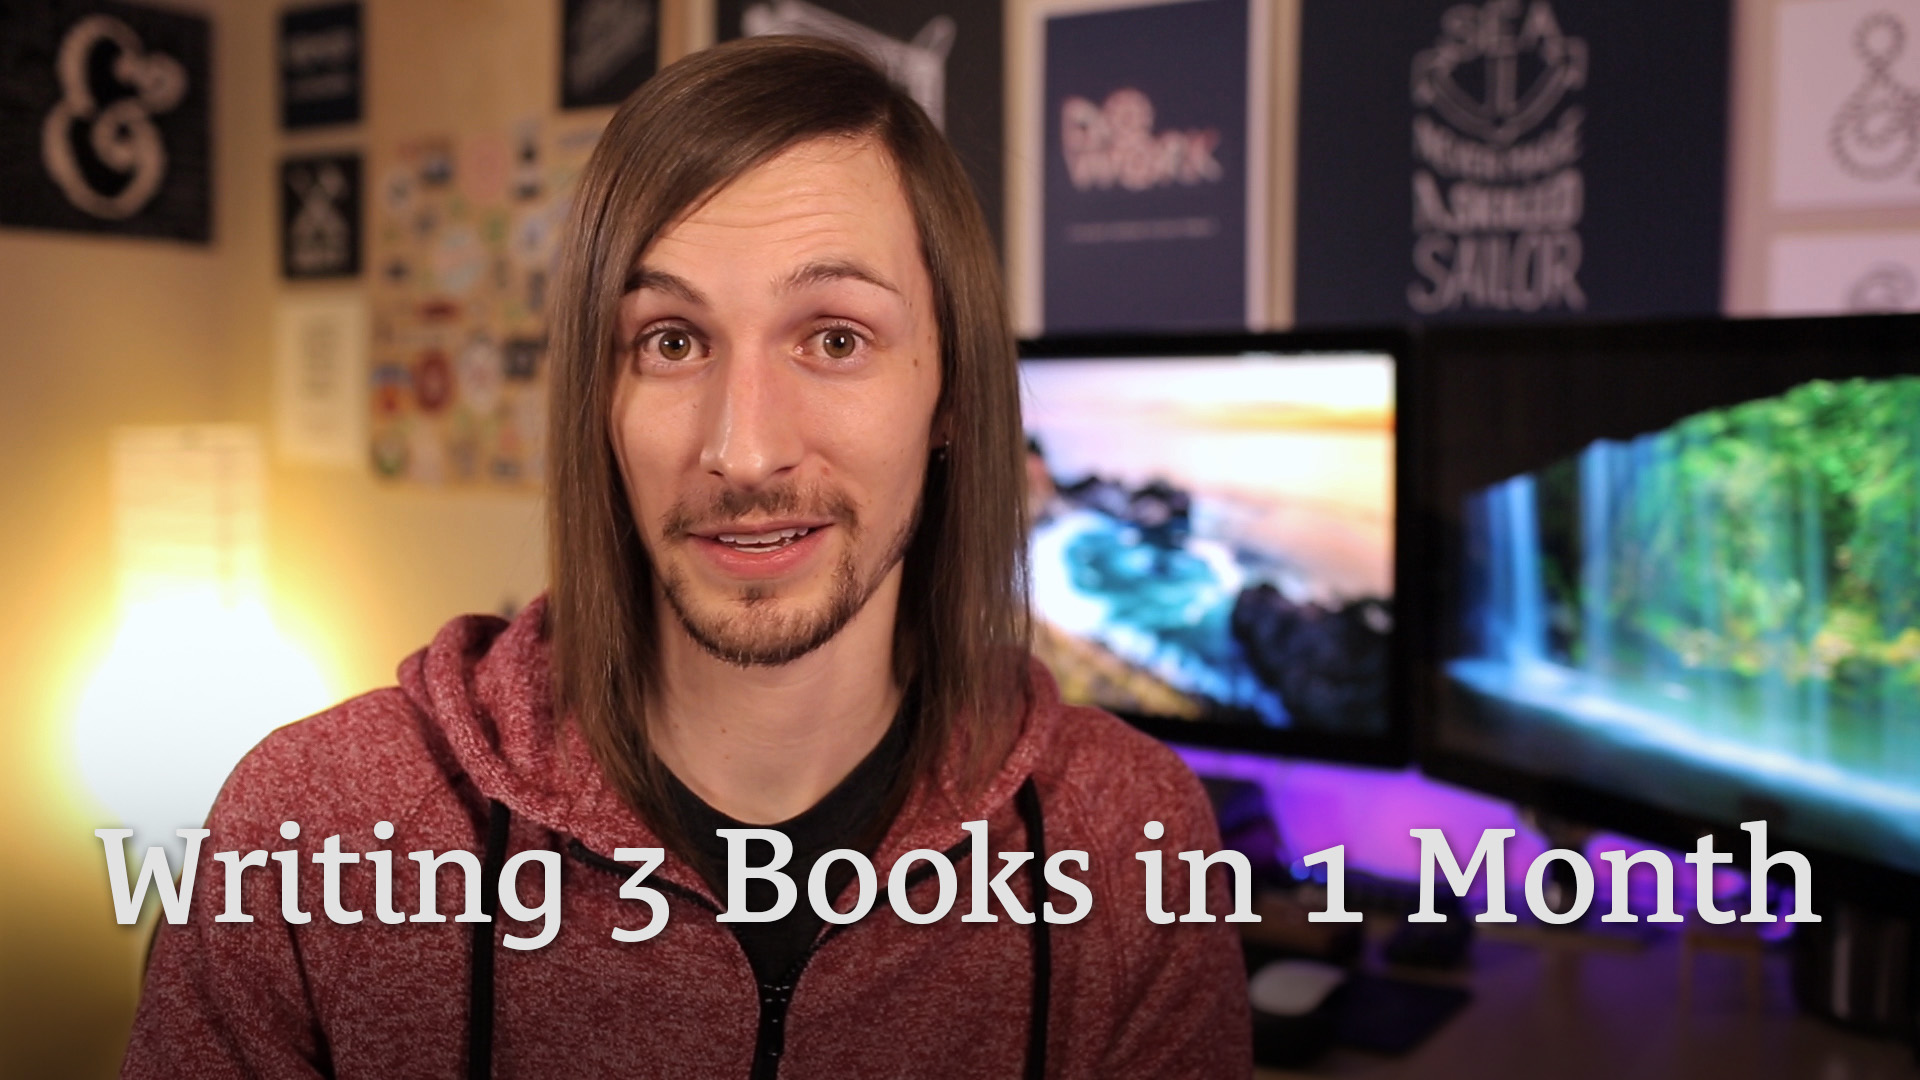 Writing 3 Books in 1 Month